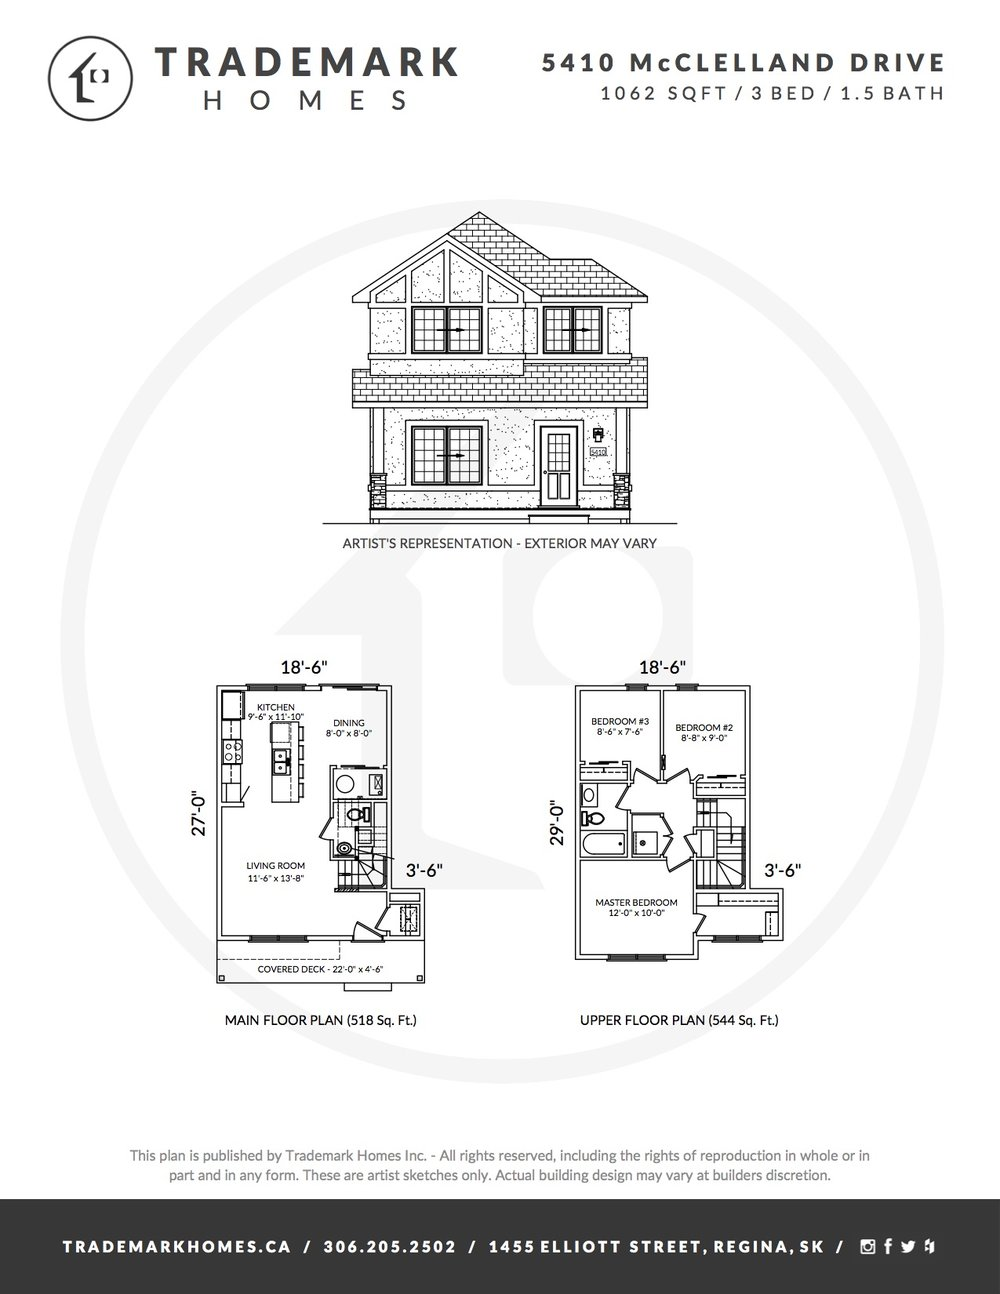 5410 McClelland Dr - Floorplan - Harbour Landing